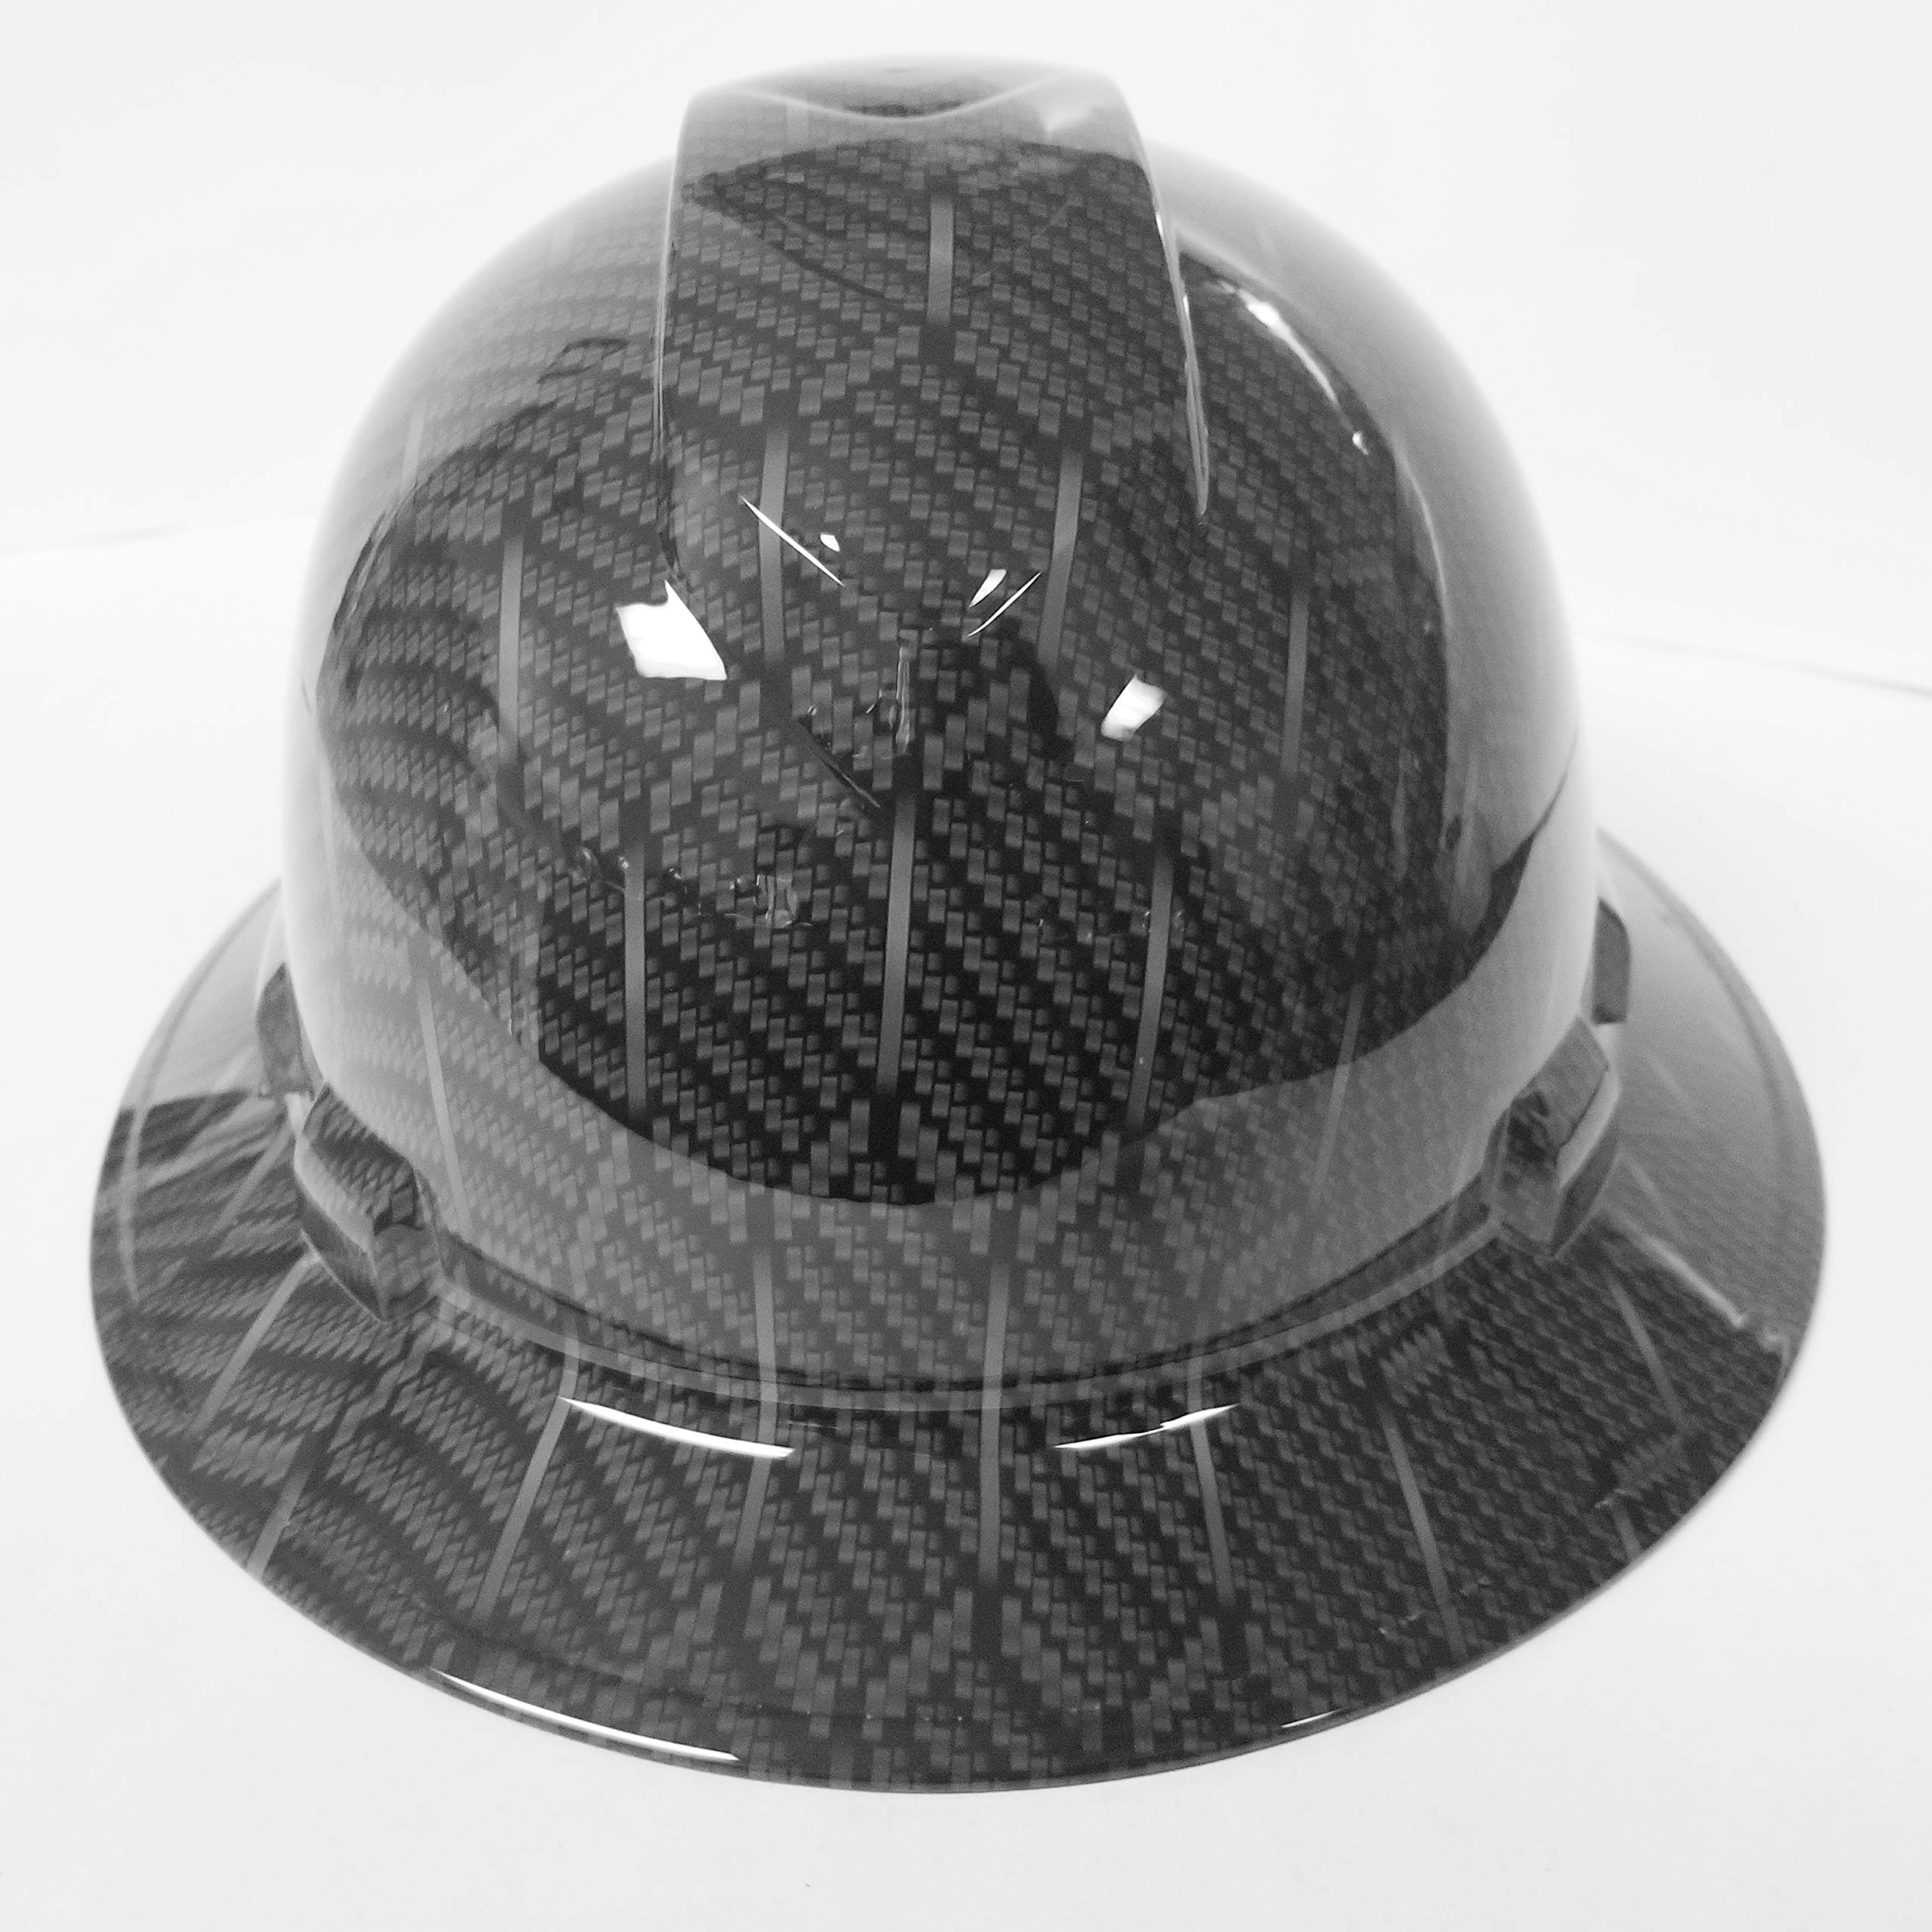 Wet Works Imaging Customized Pyramex Full Brim HEX Weave Carbon Fiber 3D Limited Hard HAT with Ratcheting Suspension Custom LIDS Crazy Sick Construction PPE by Wet Works Imaging (Image #2)